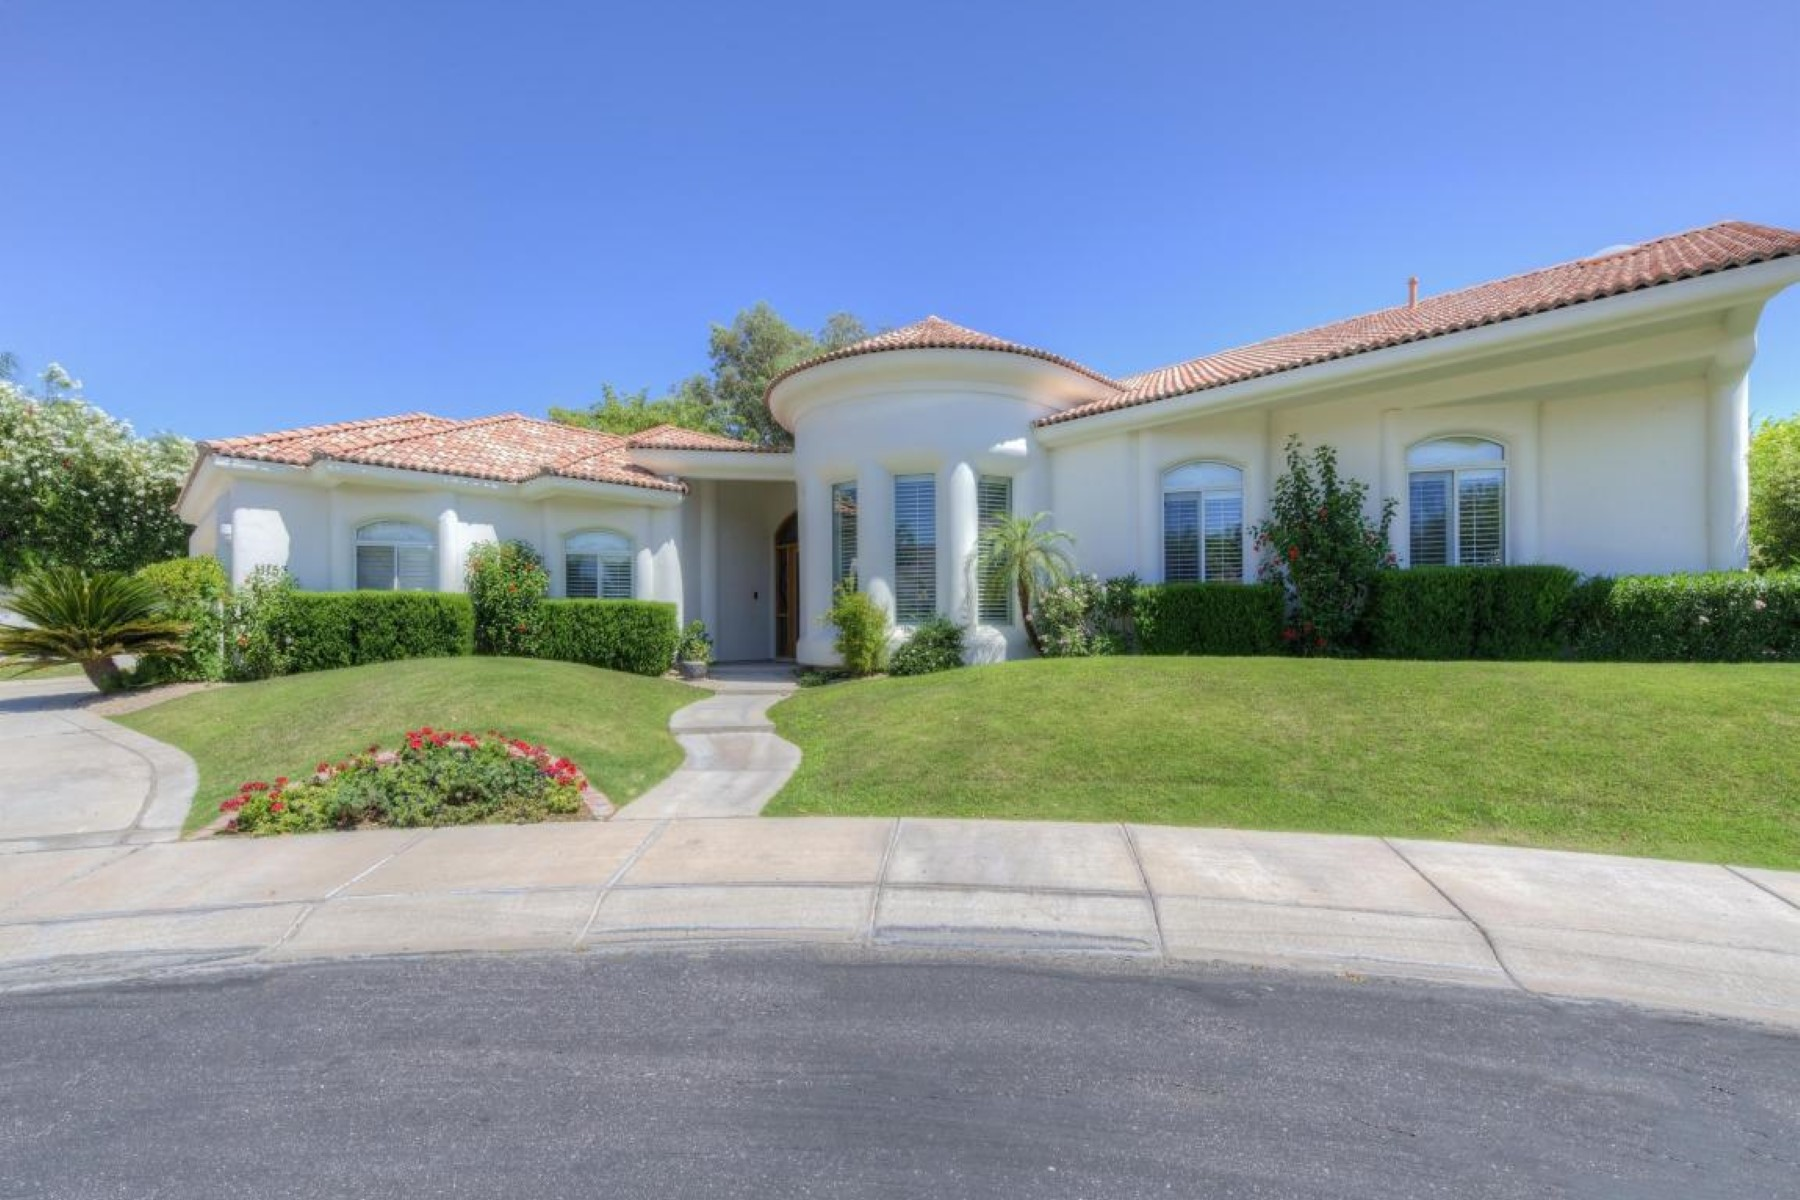 Moradia para Venda às Beautiful home in an extremely private & located in a gated community. 11153 E CANNON DR Scottsdale, Arizona 85259 Estados Unidos